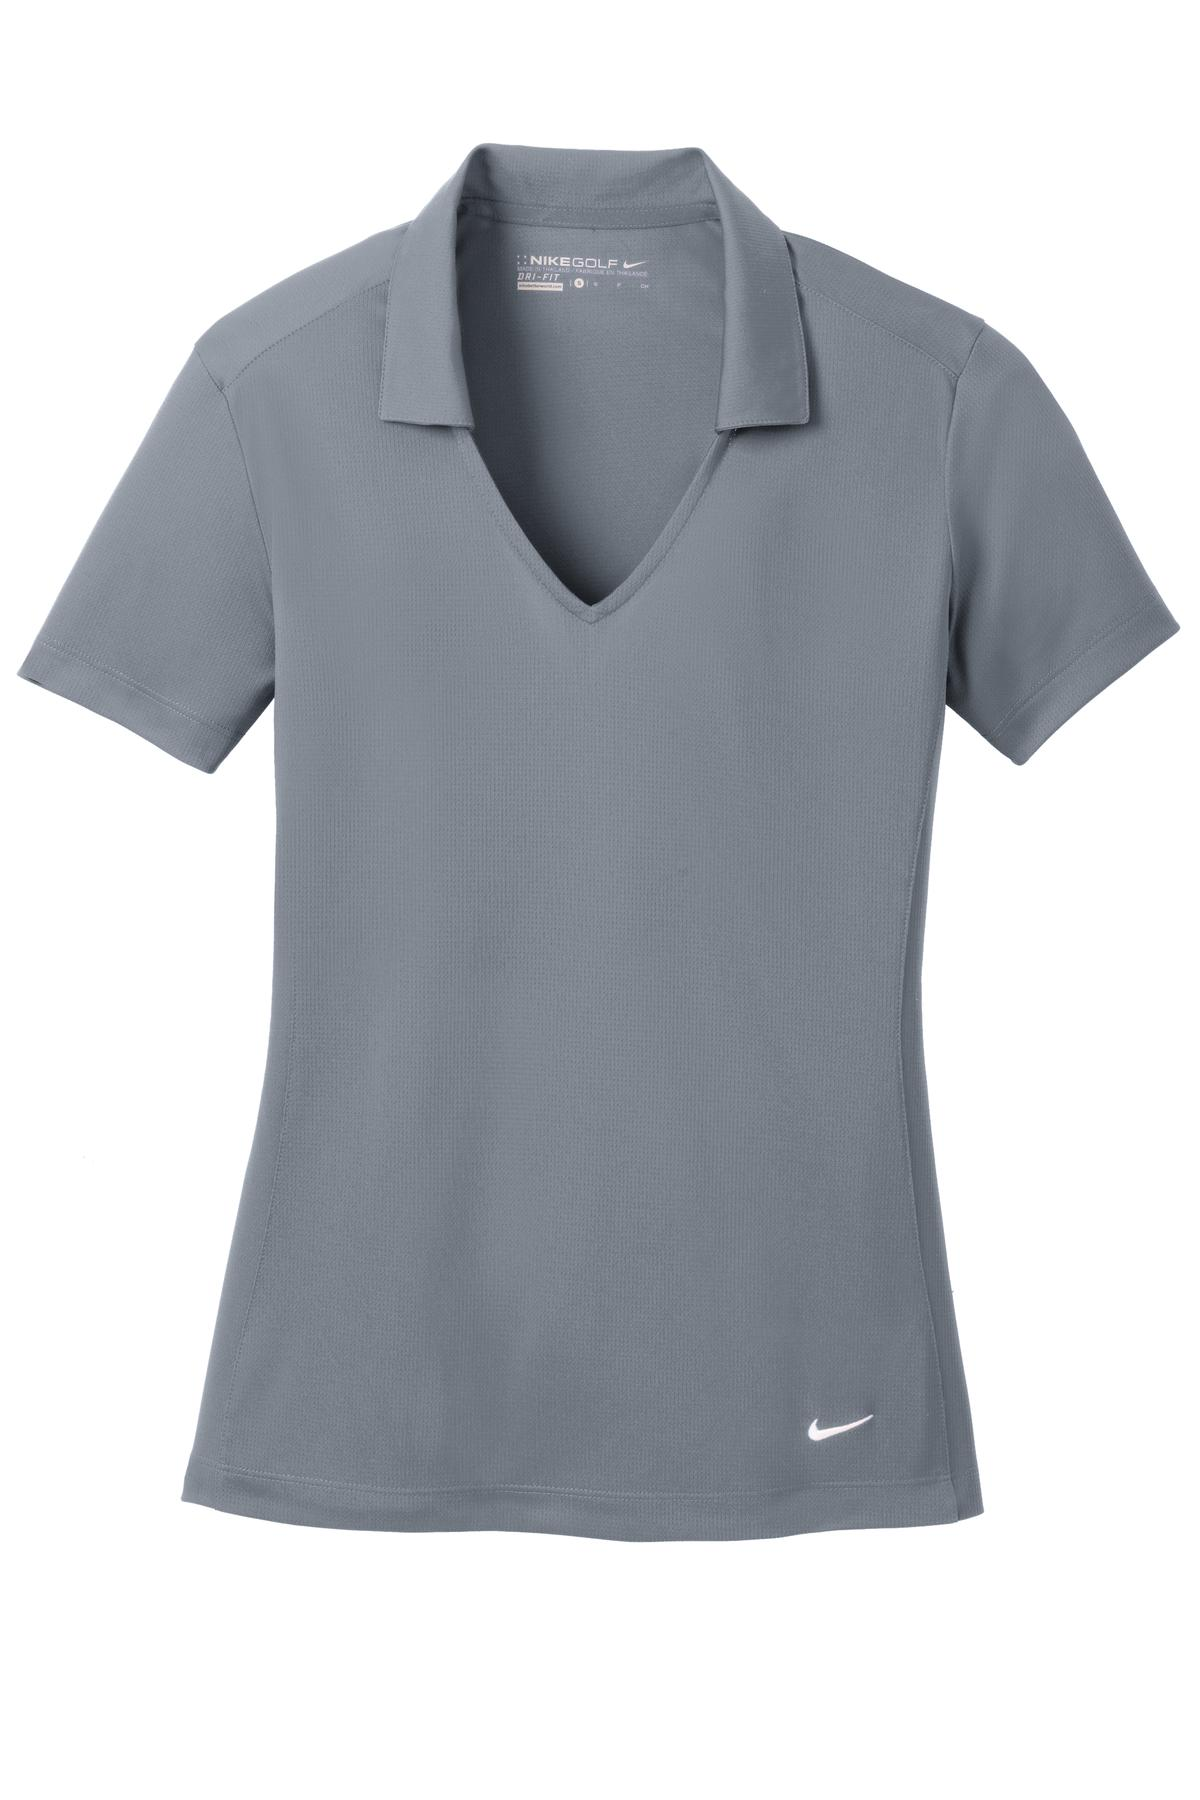 Cool Grey Nike Ladies Dri-FIT Vertical Mesh Polo.